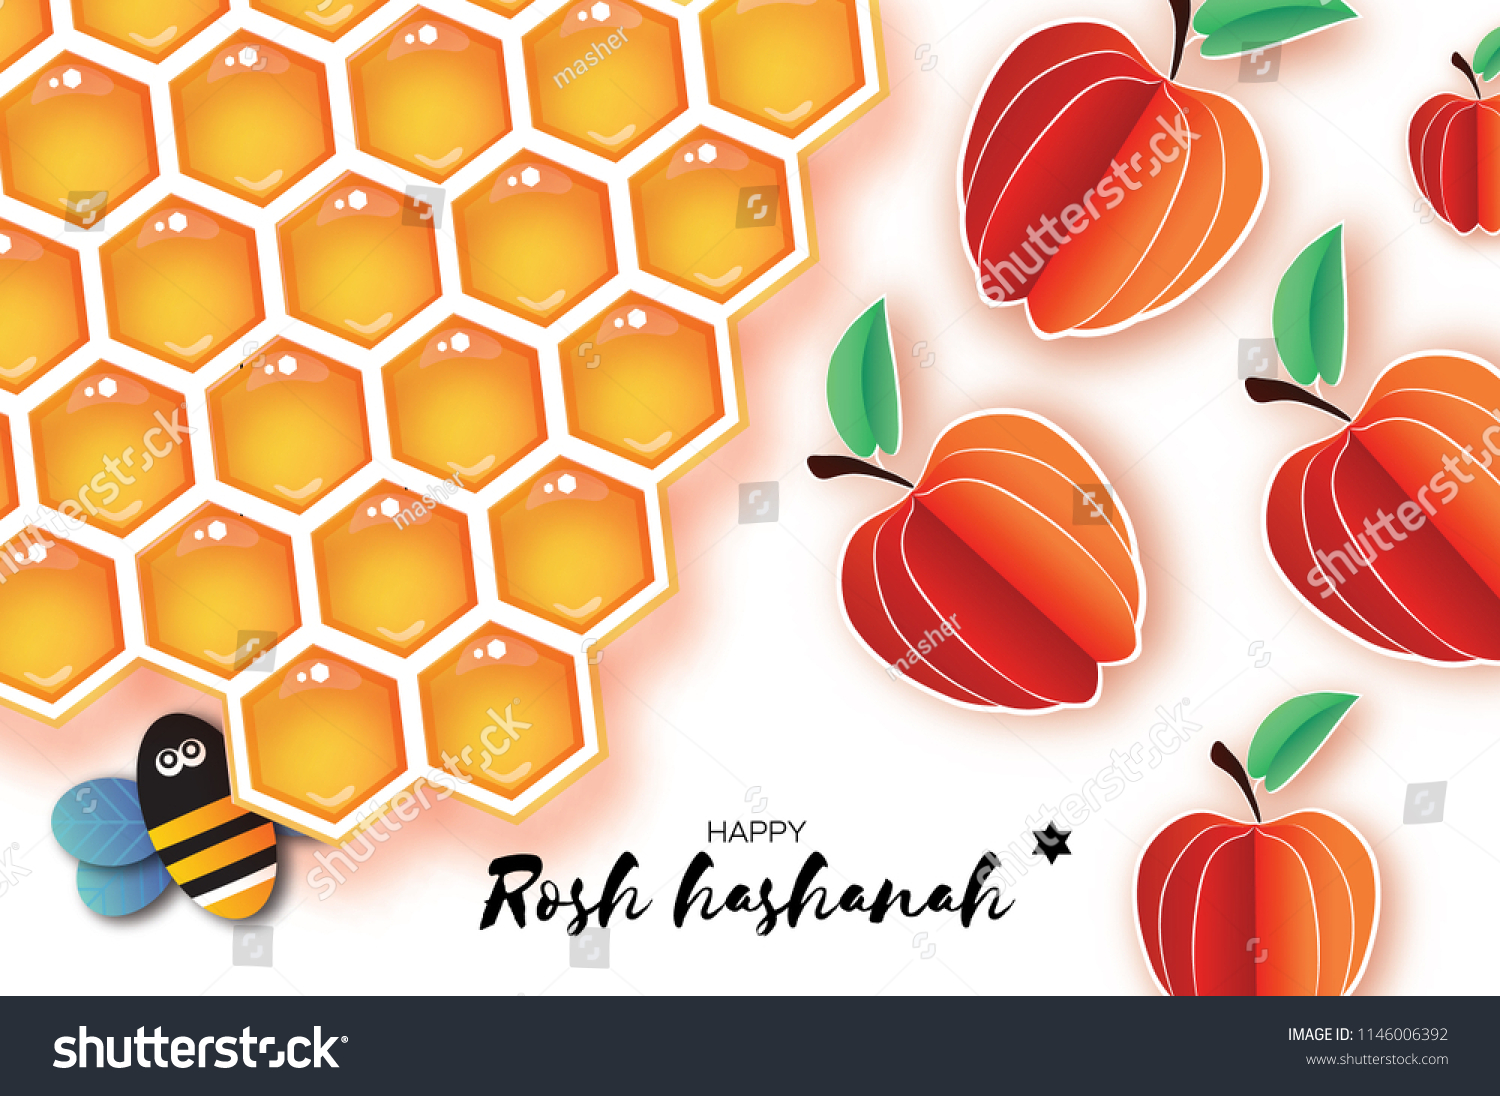 Jewish New Year Rosh Hashanah Greeting Stock Vector Royalty Free